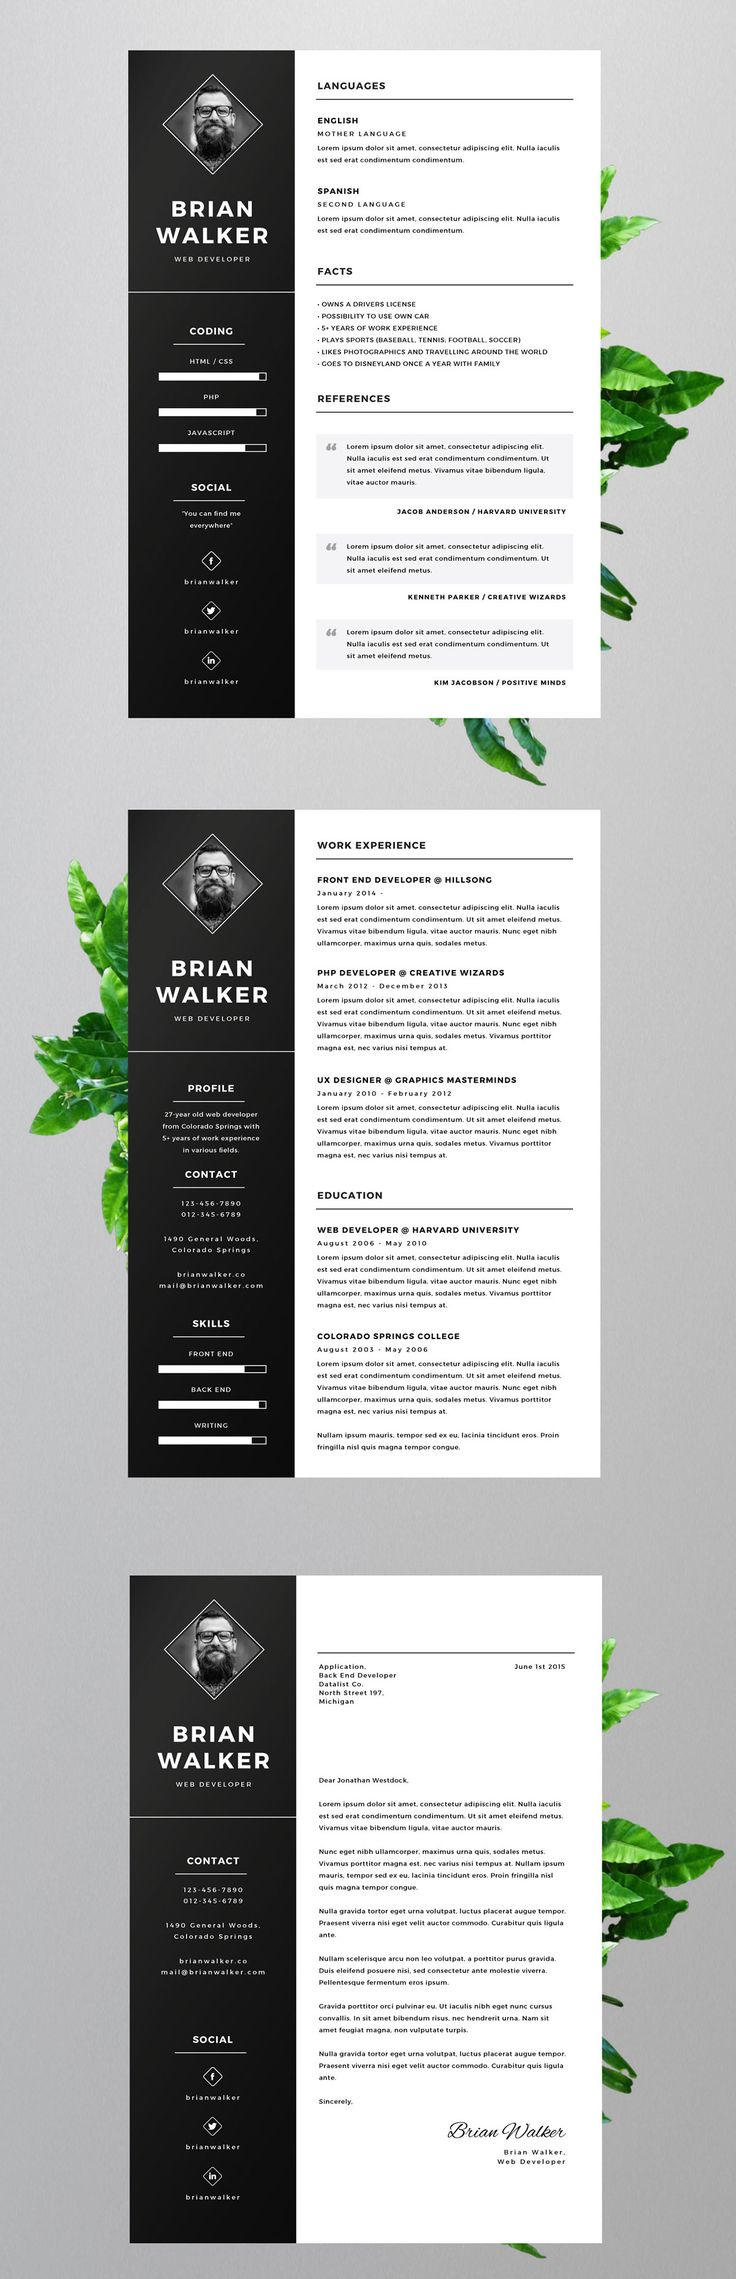 25 best free downloadable resume templates by industry images on pinterest cv template 2nd grades and cover letters